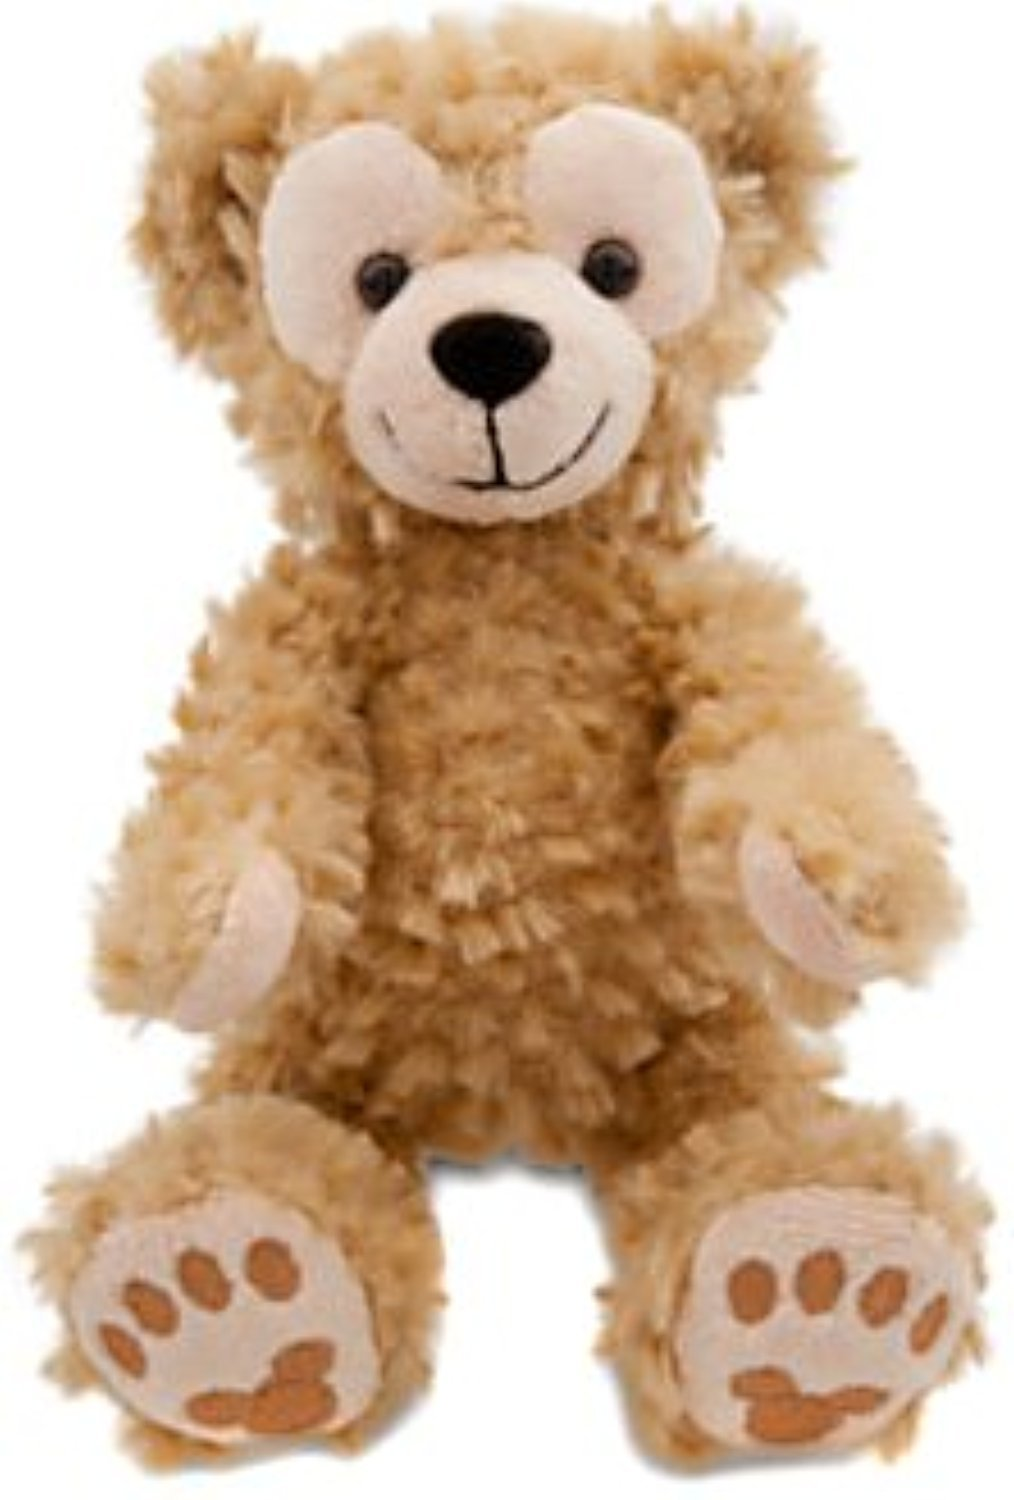 ◎送料込み◎ Disney Exclusive 8 Inch Plush Figure Duffy